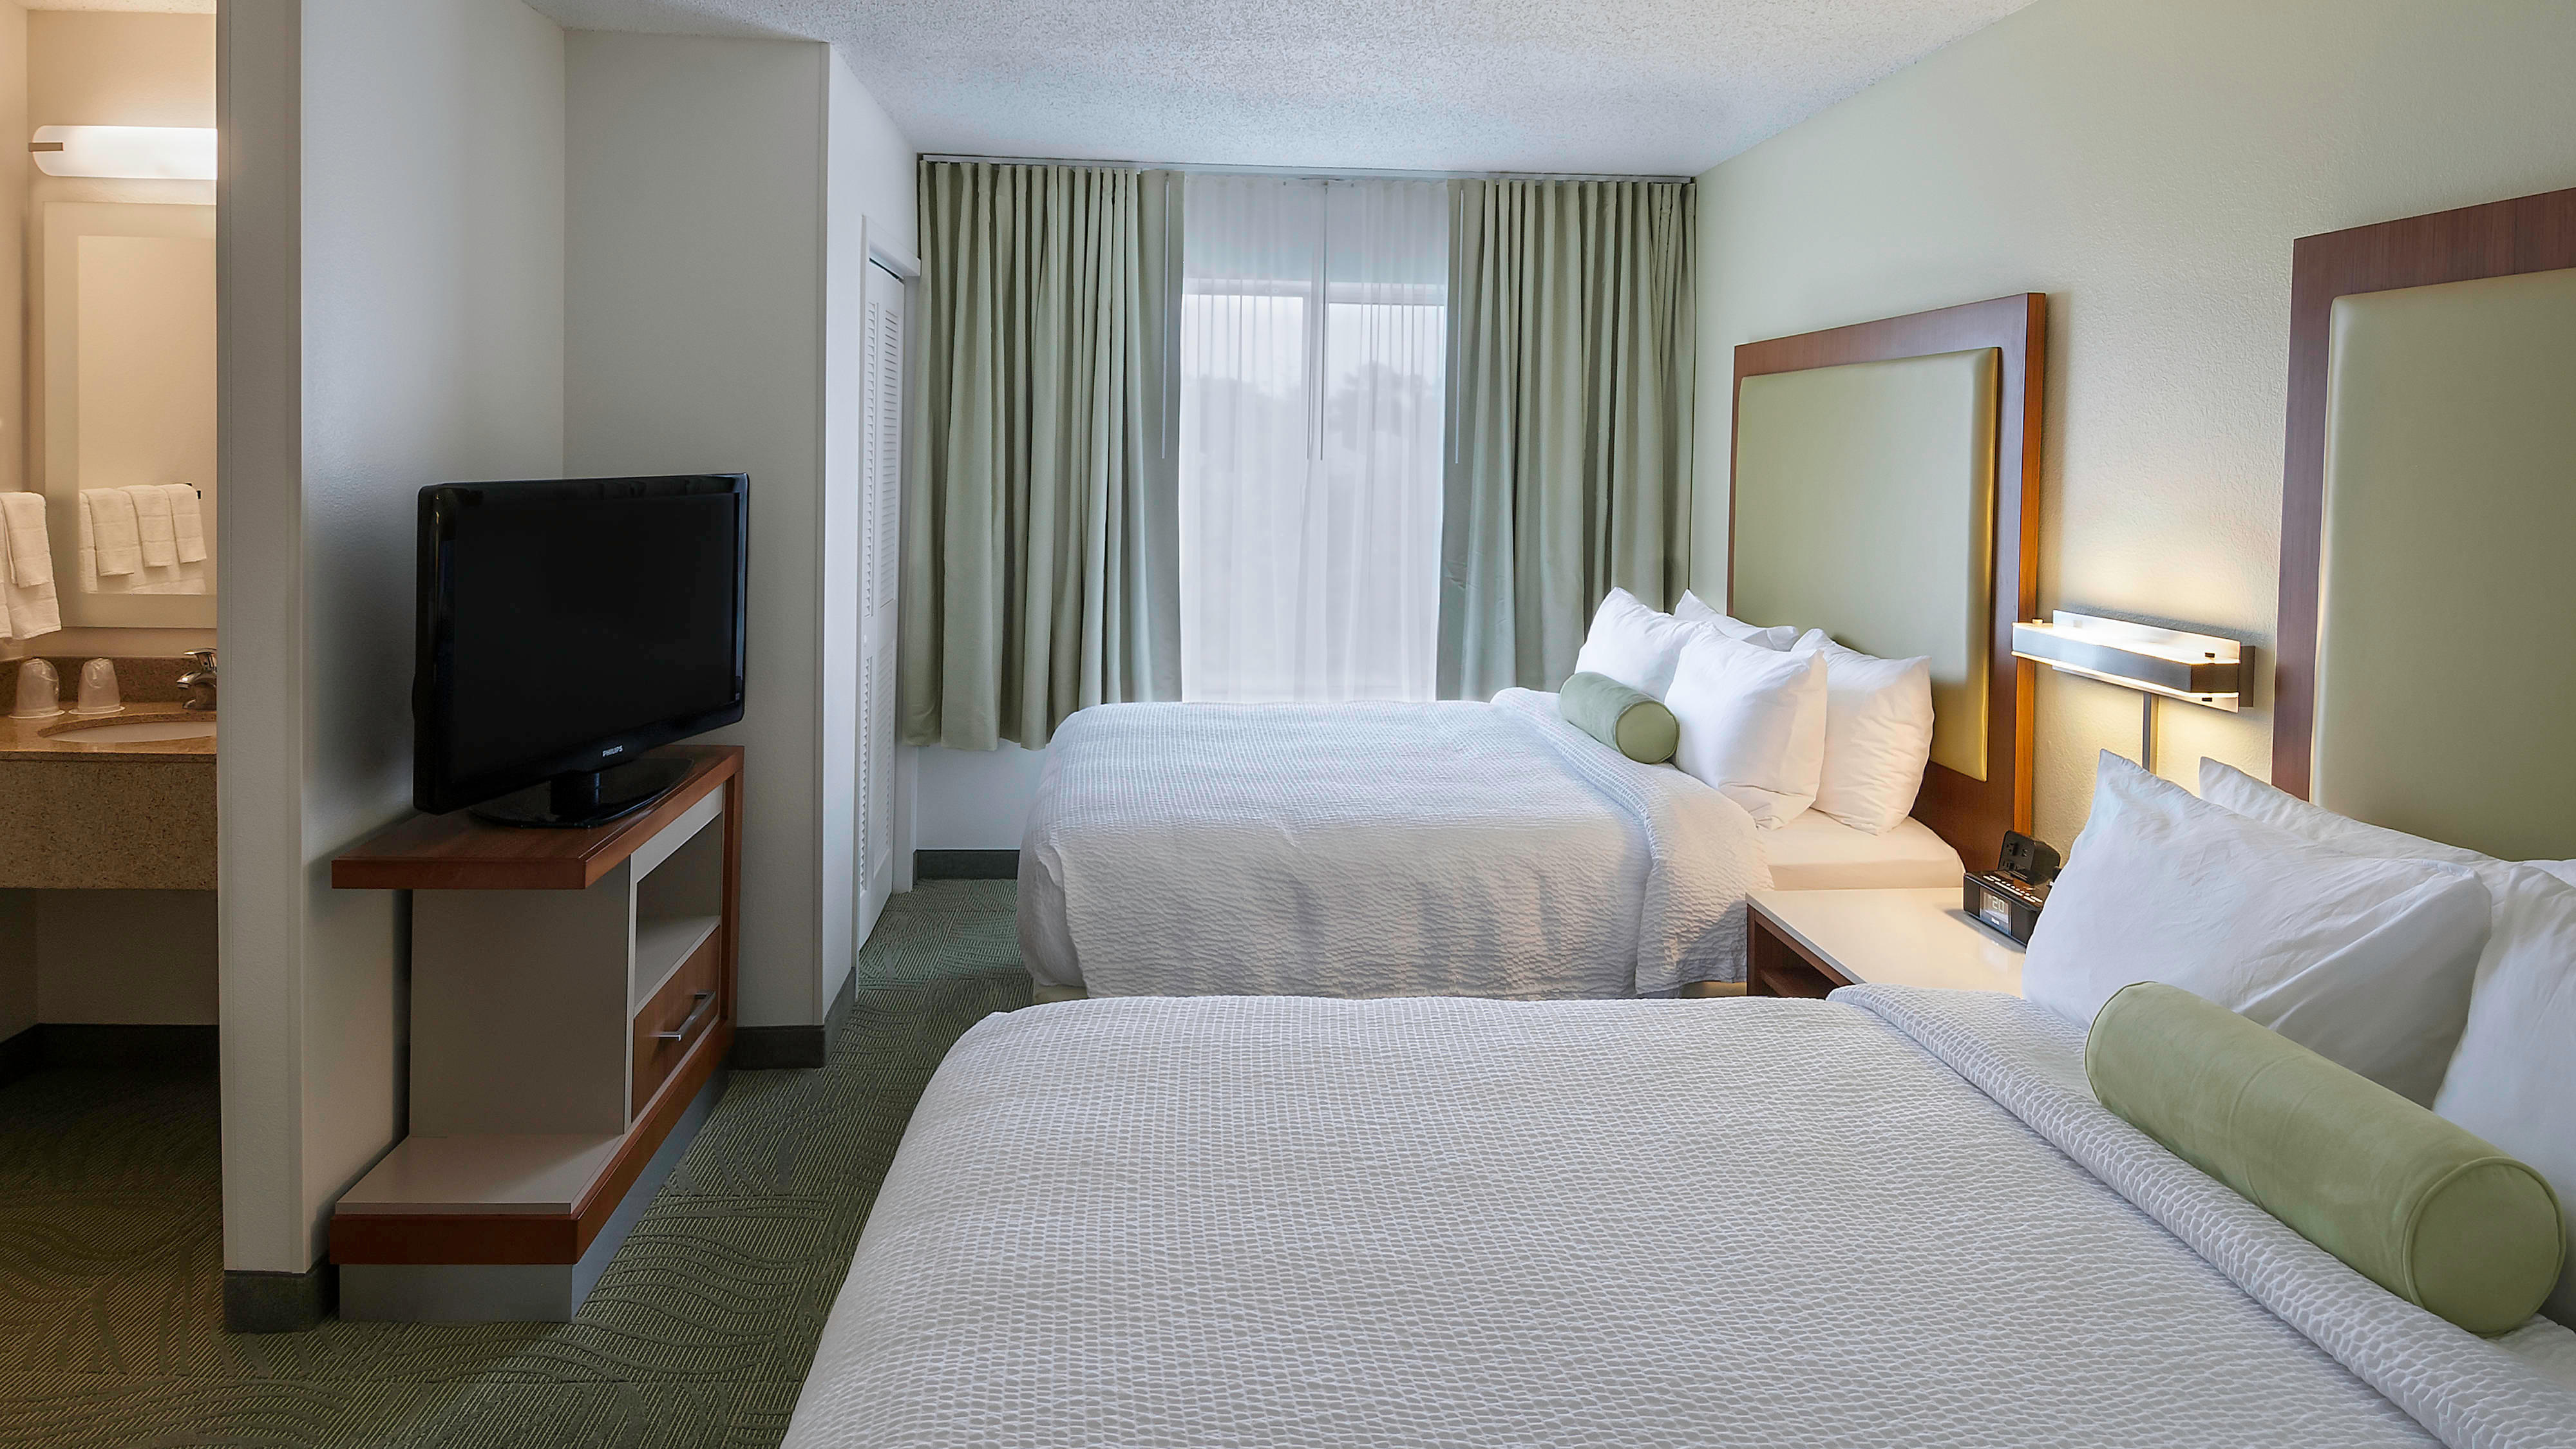 SpringHill Suites by Marriott Baton Rouge South image 6